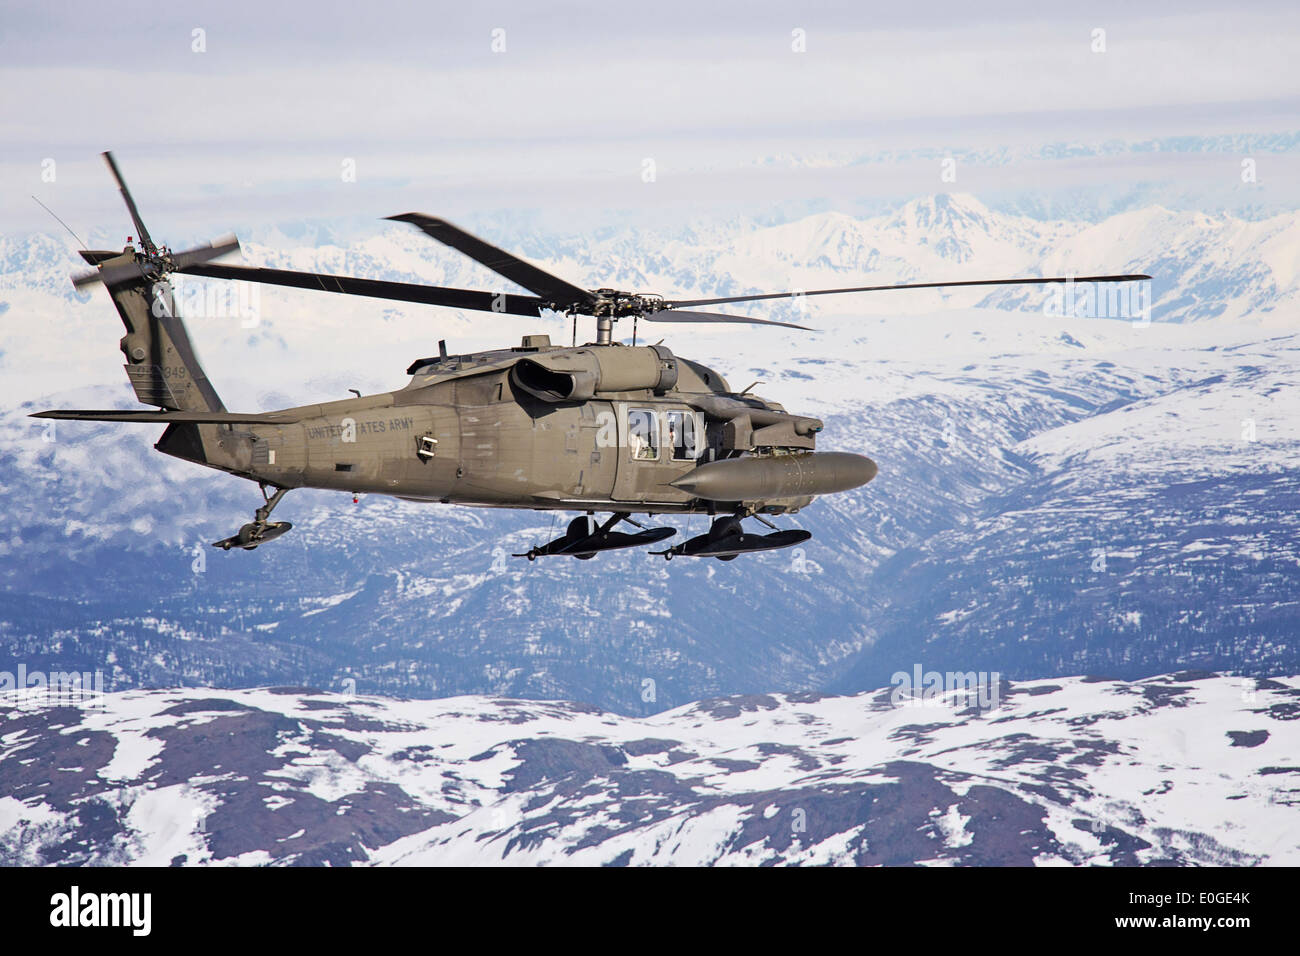 Helicopter Fuel Range Wiring Diagrams Dialtone Generator Circuit Diagram Tradeoficcom A Us Army Uh 60 Black Hawk Equipped With Snow Skies And Rh Alamy Com